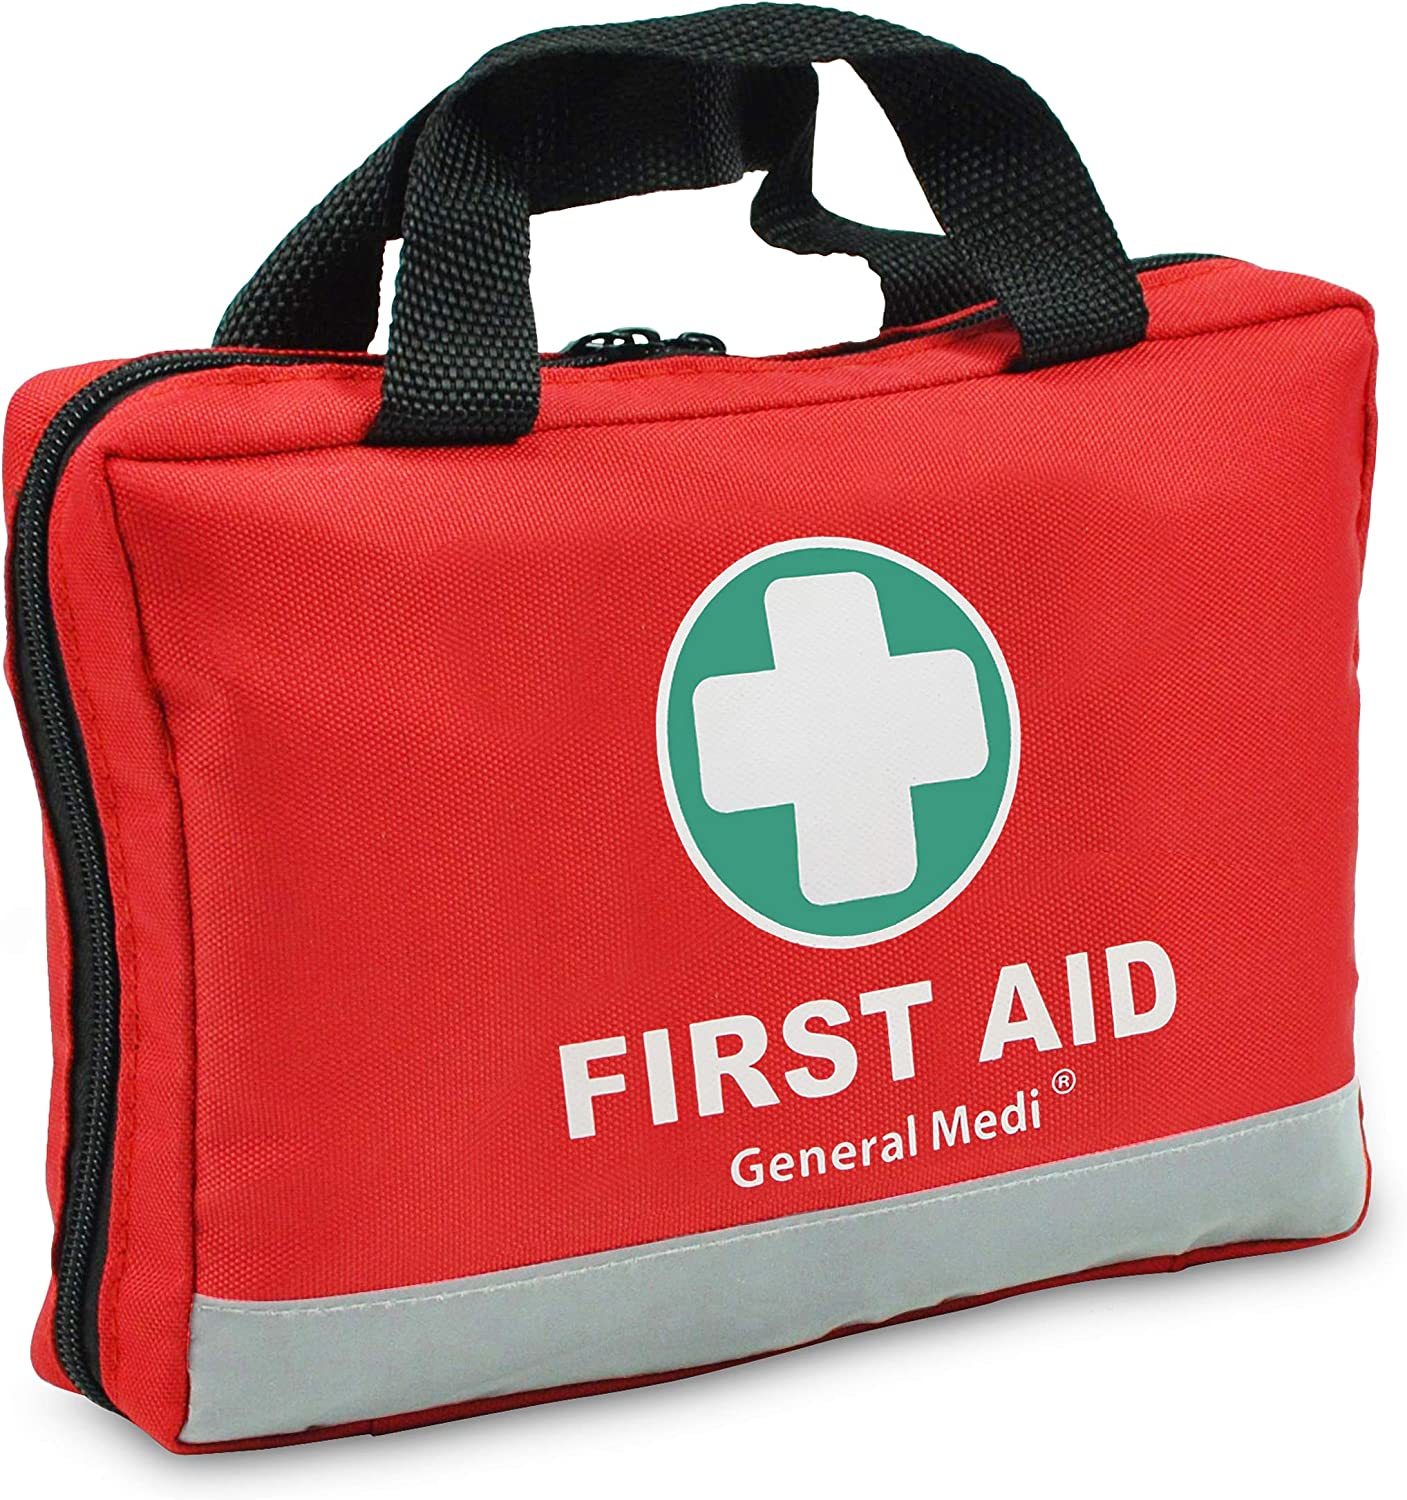 General Medi First Aid Kit -309 Pieces